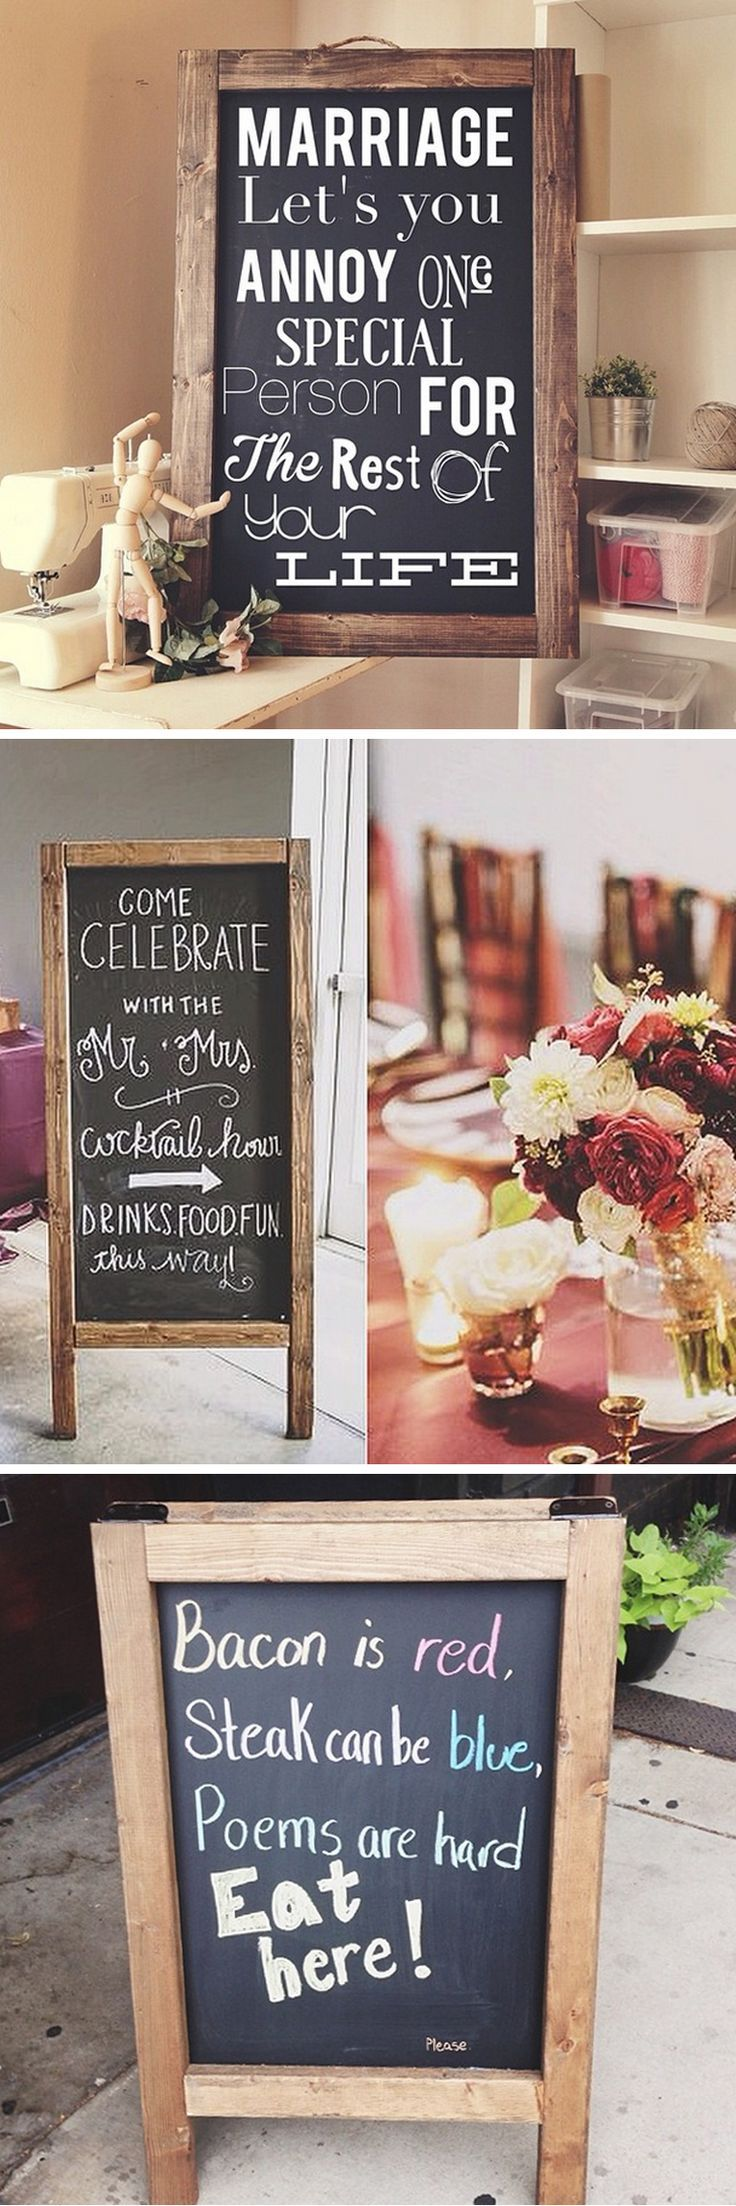 Rustic Chalkboard Signs For Your Wedding Menu or Seating